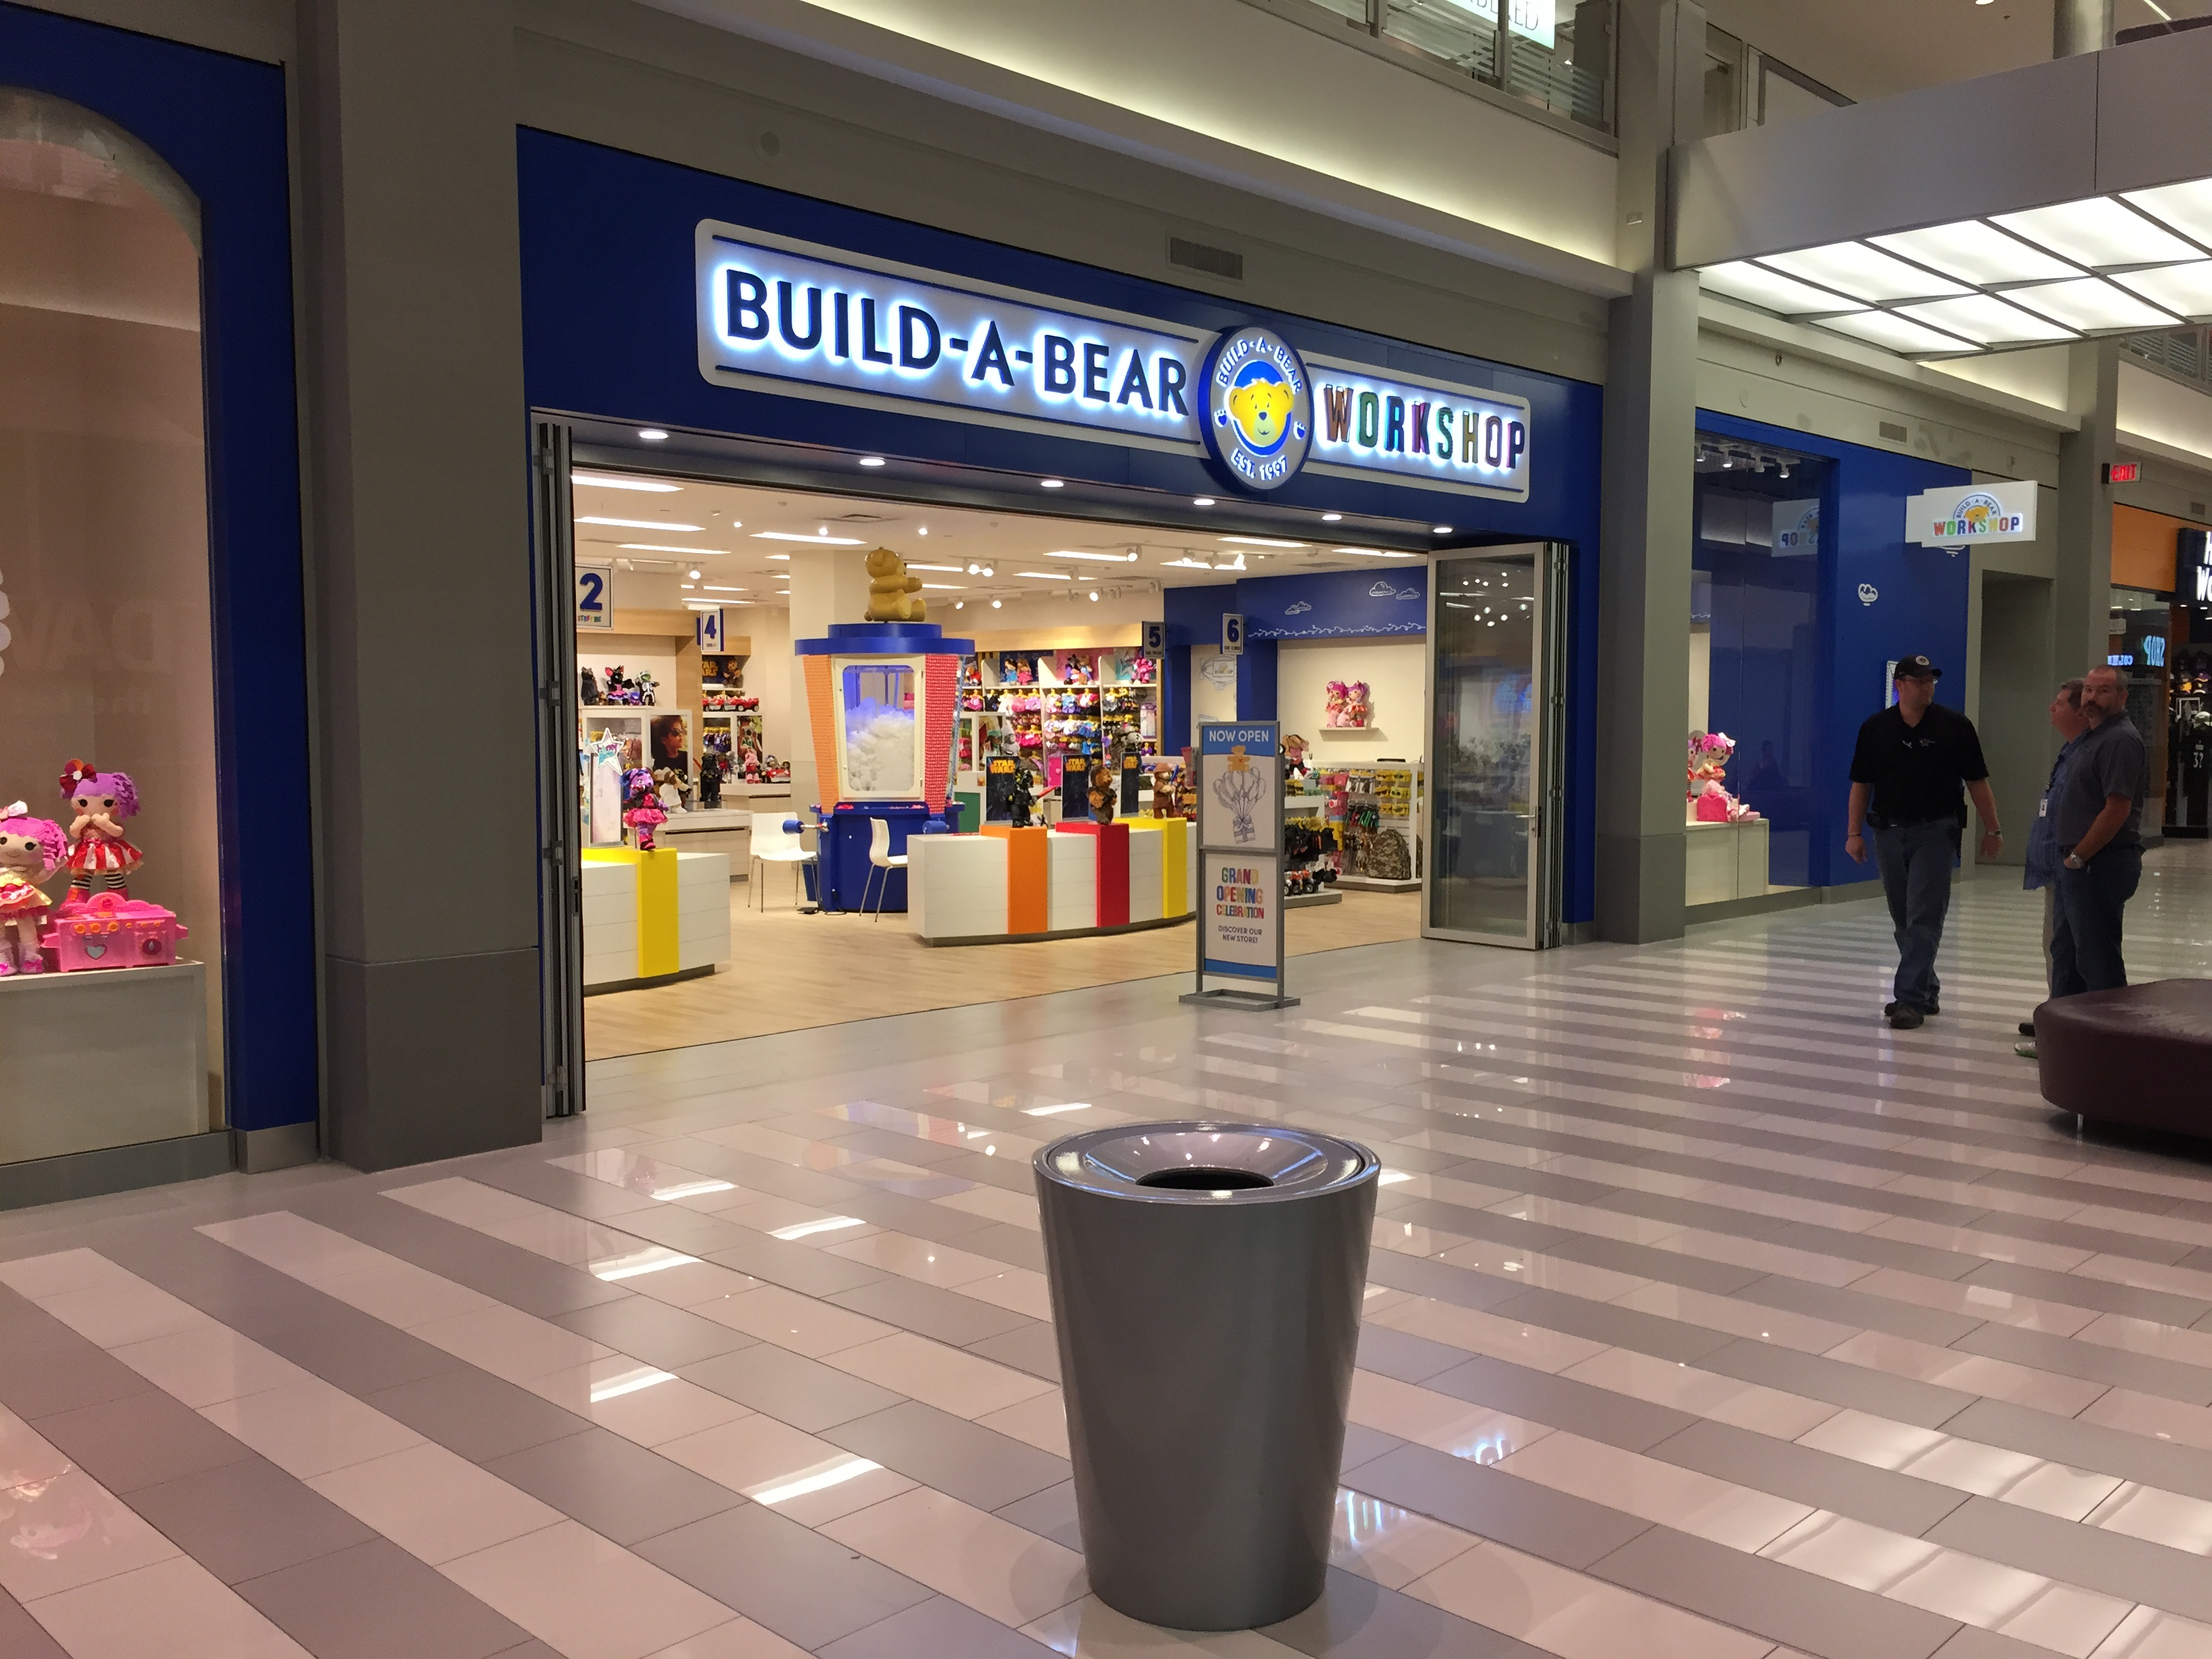 Build-A-Bear Workshop (Mall of America)